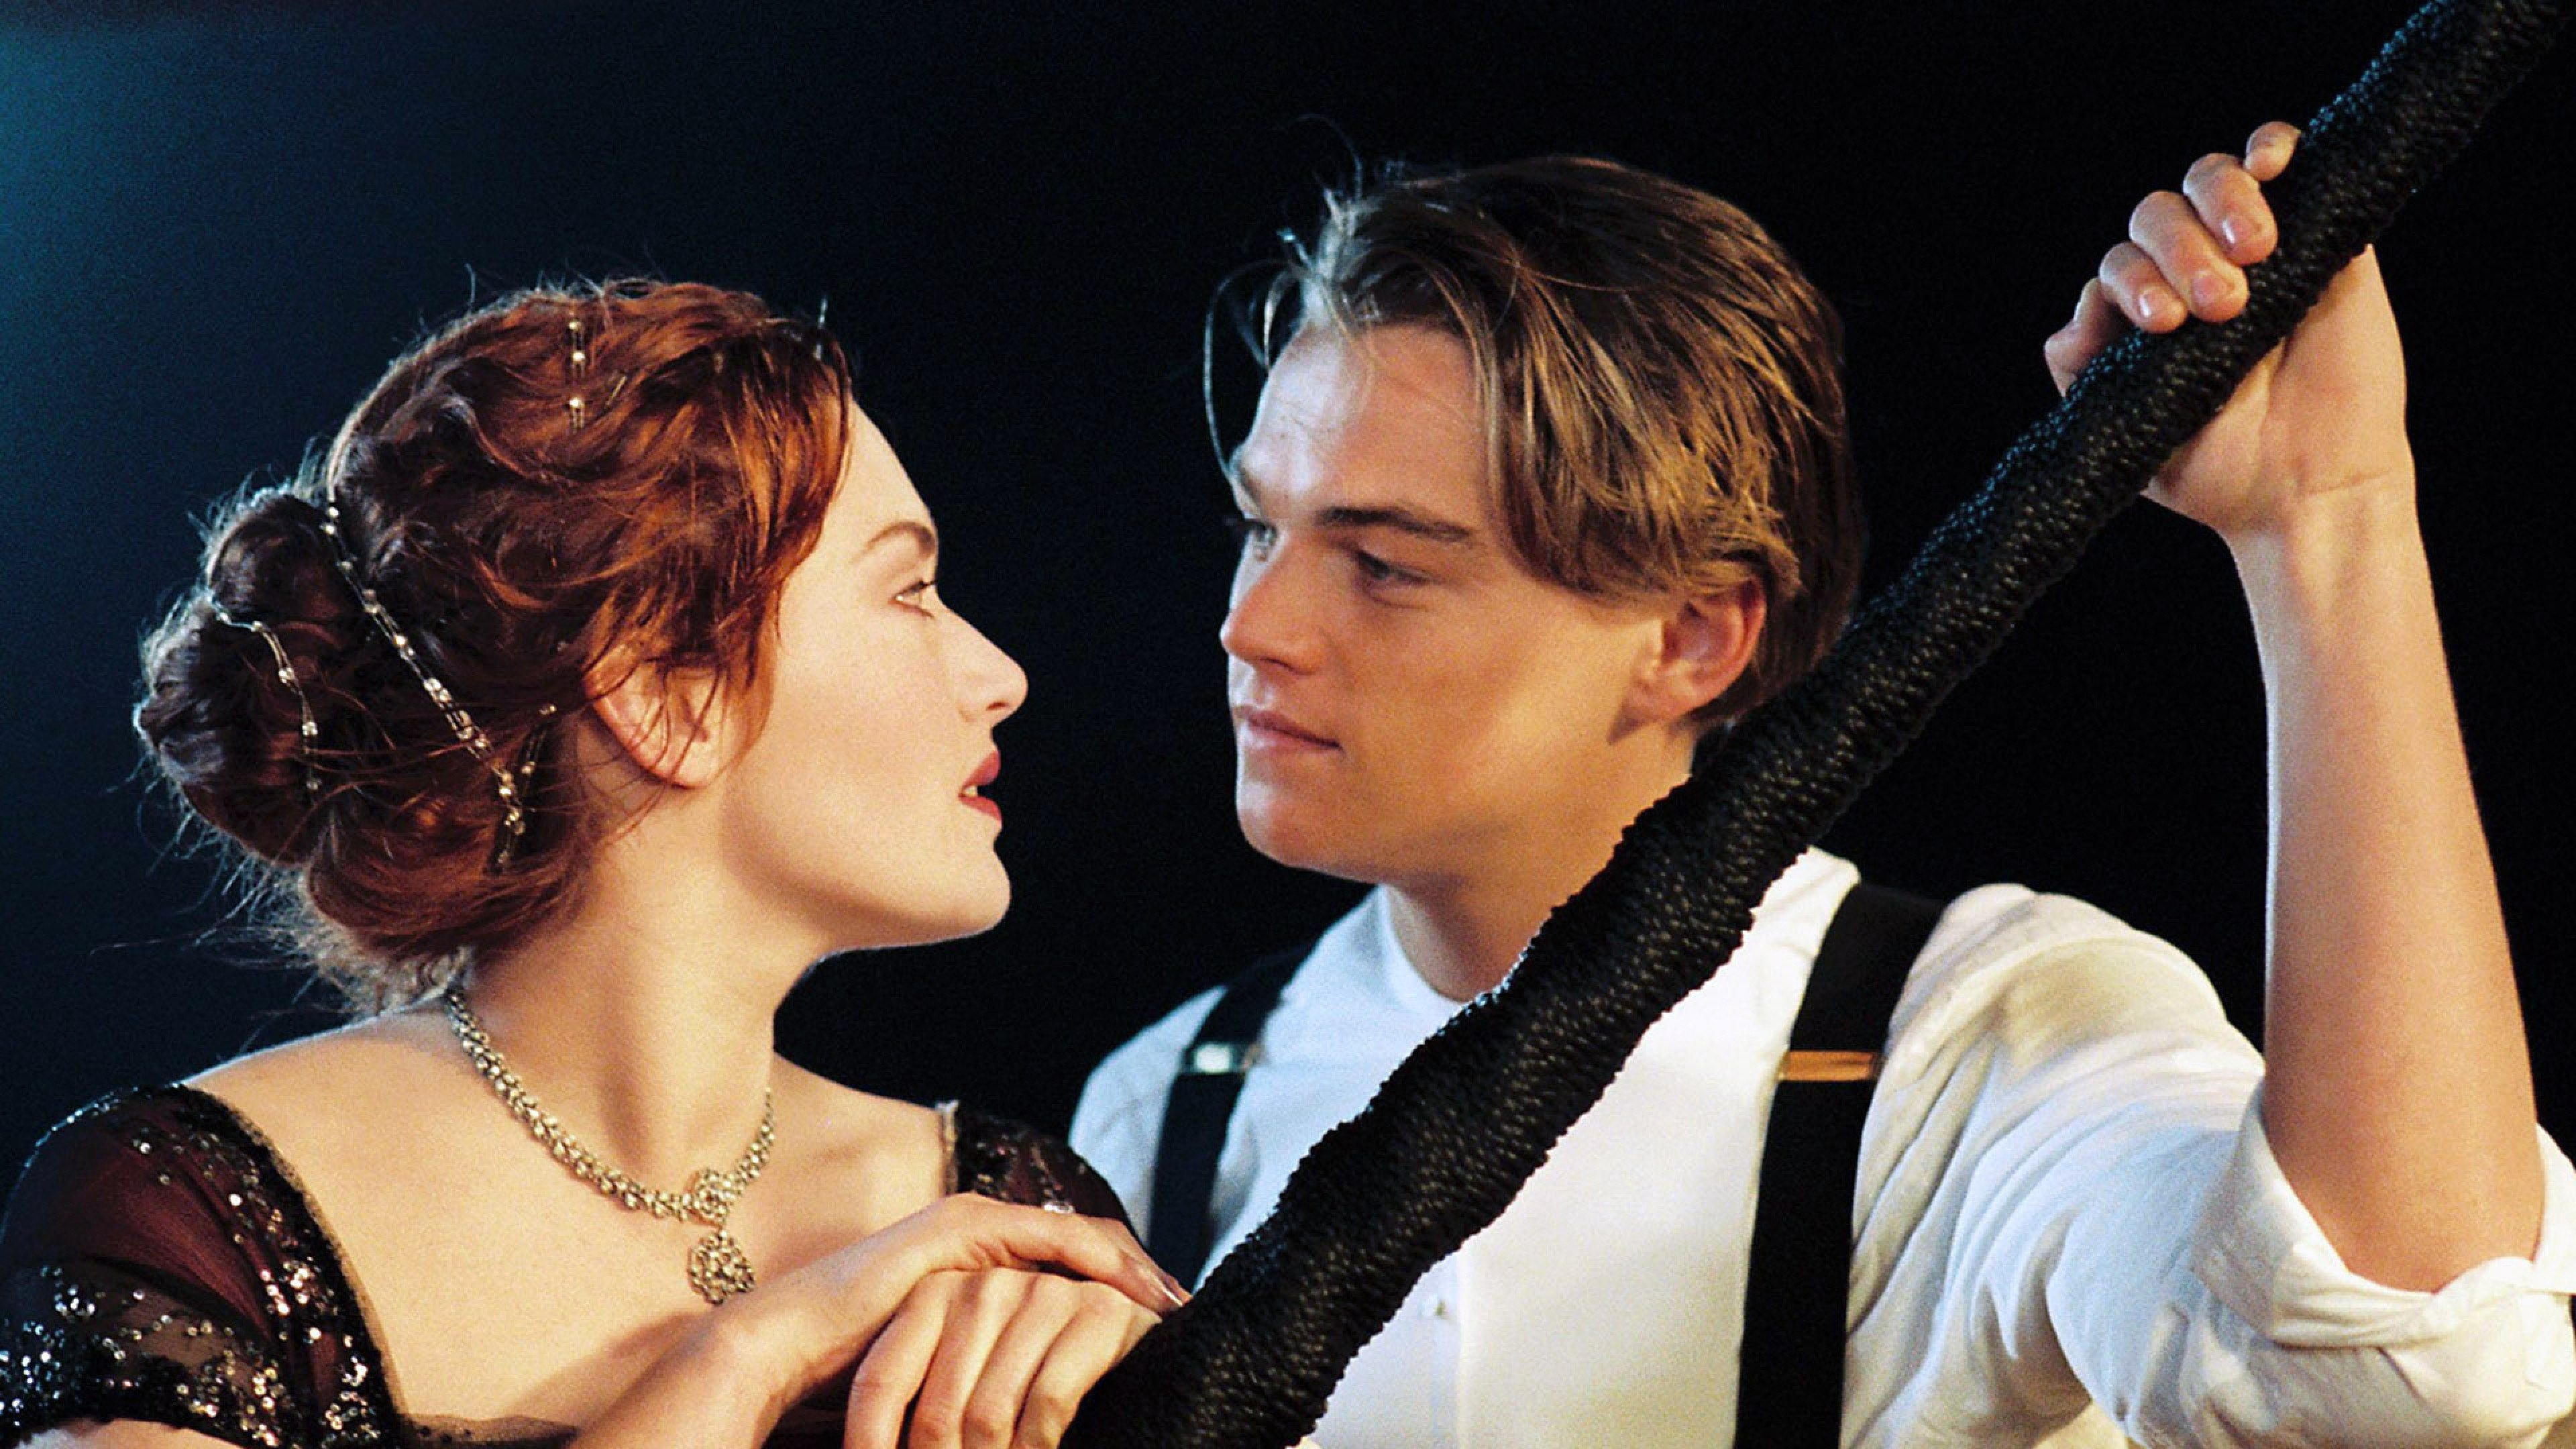 kate winslet and leonardo in titanic movie, hd movies, 4k wallpapers